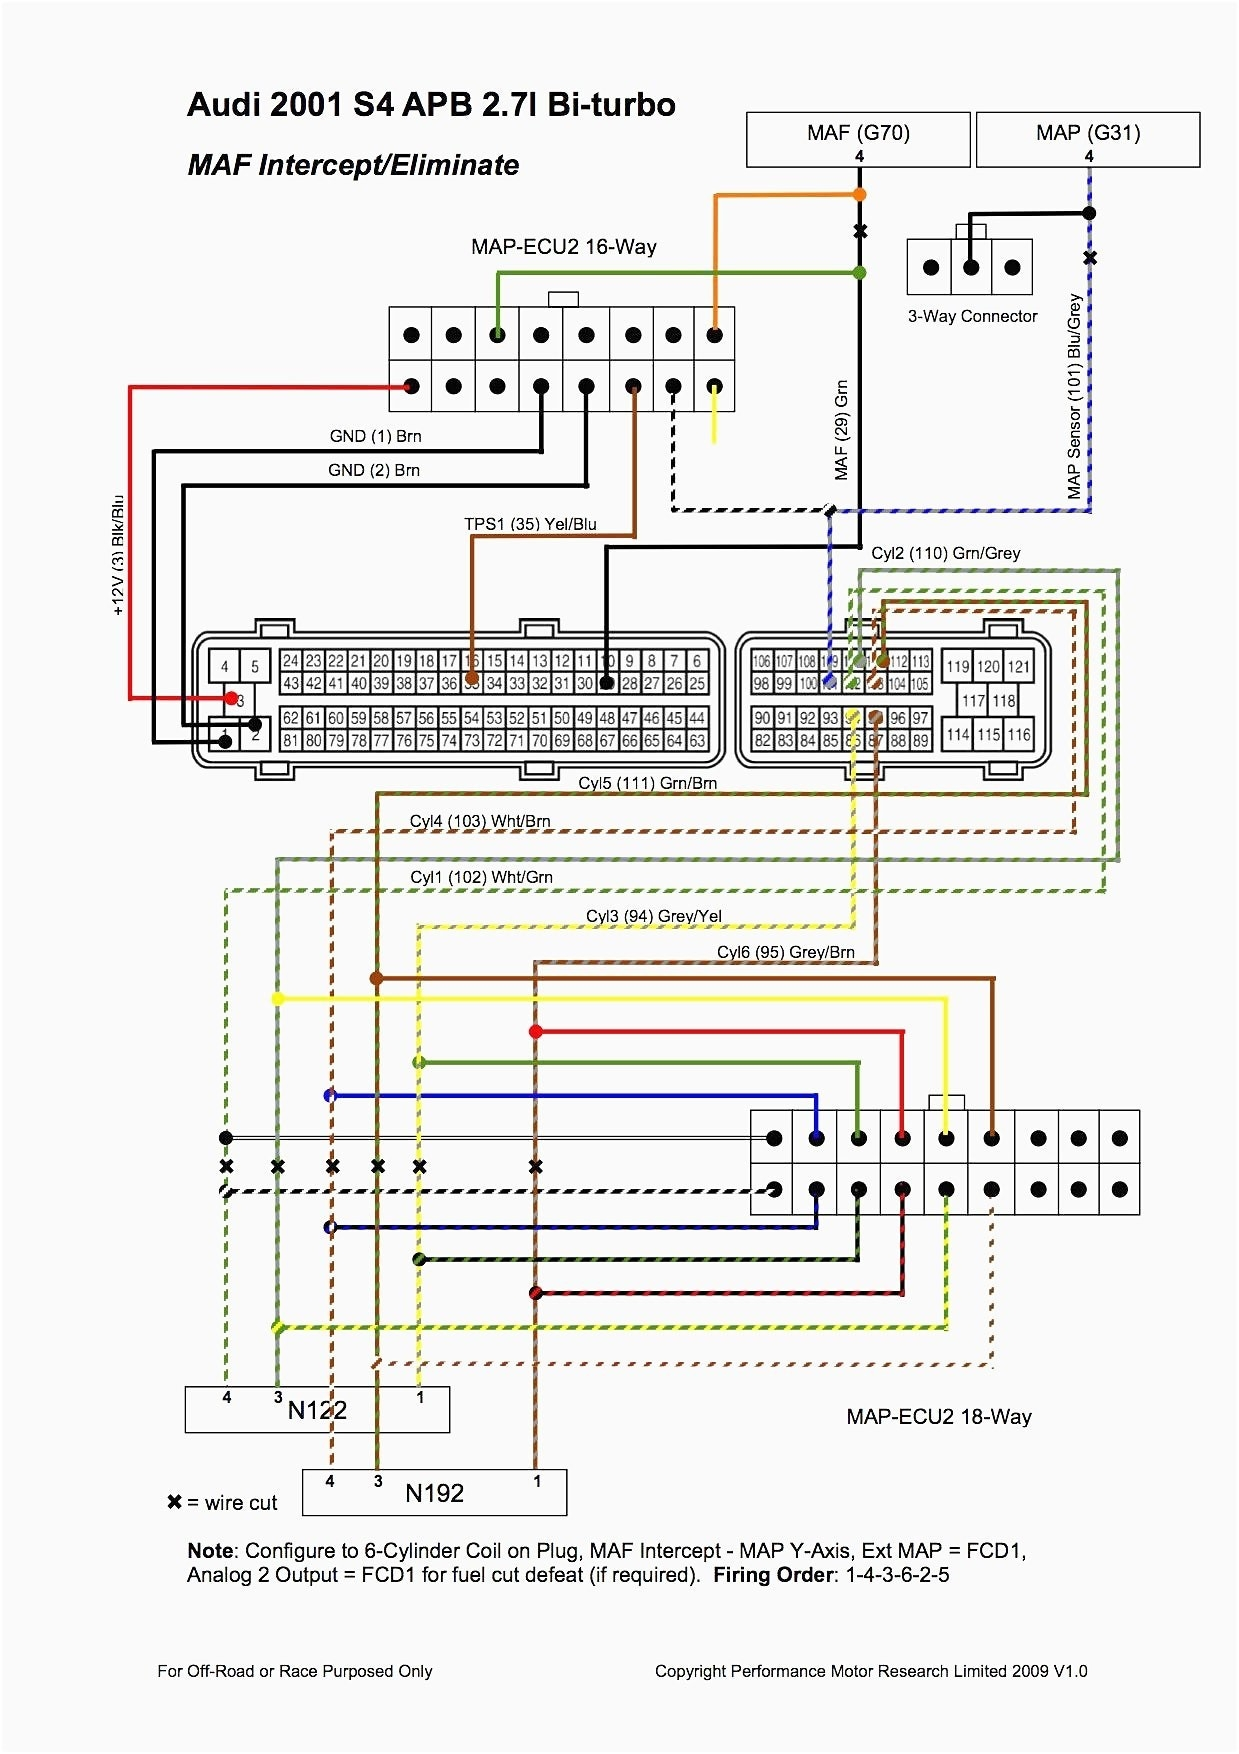 Wiring And Fuse Image - All Free Accessed Wiring Databse